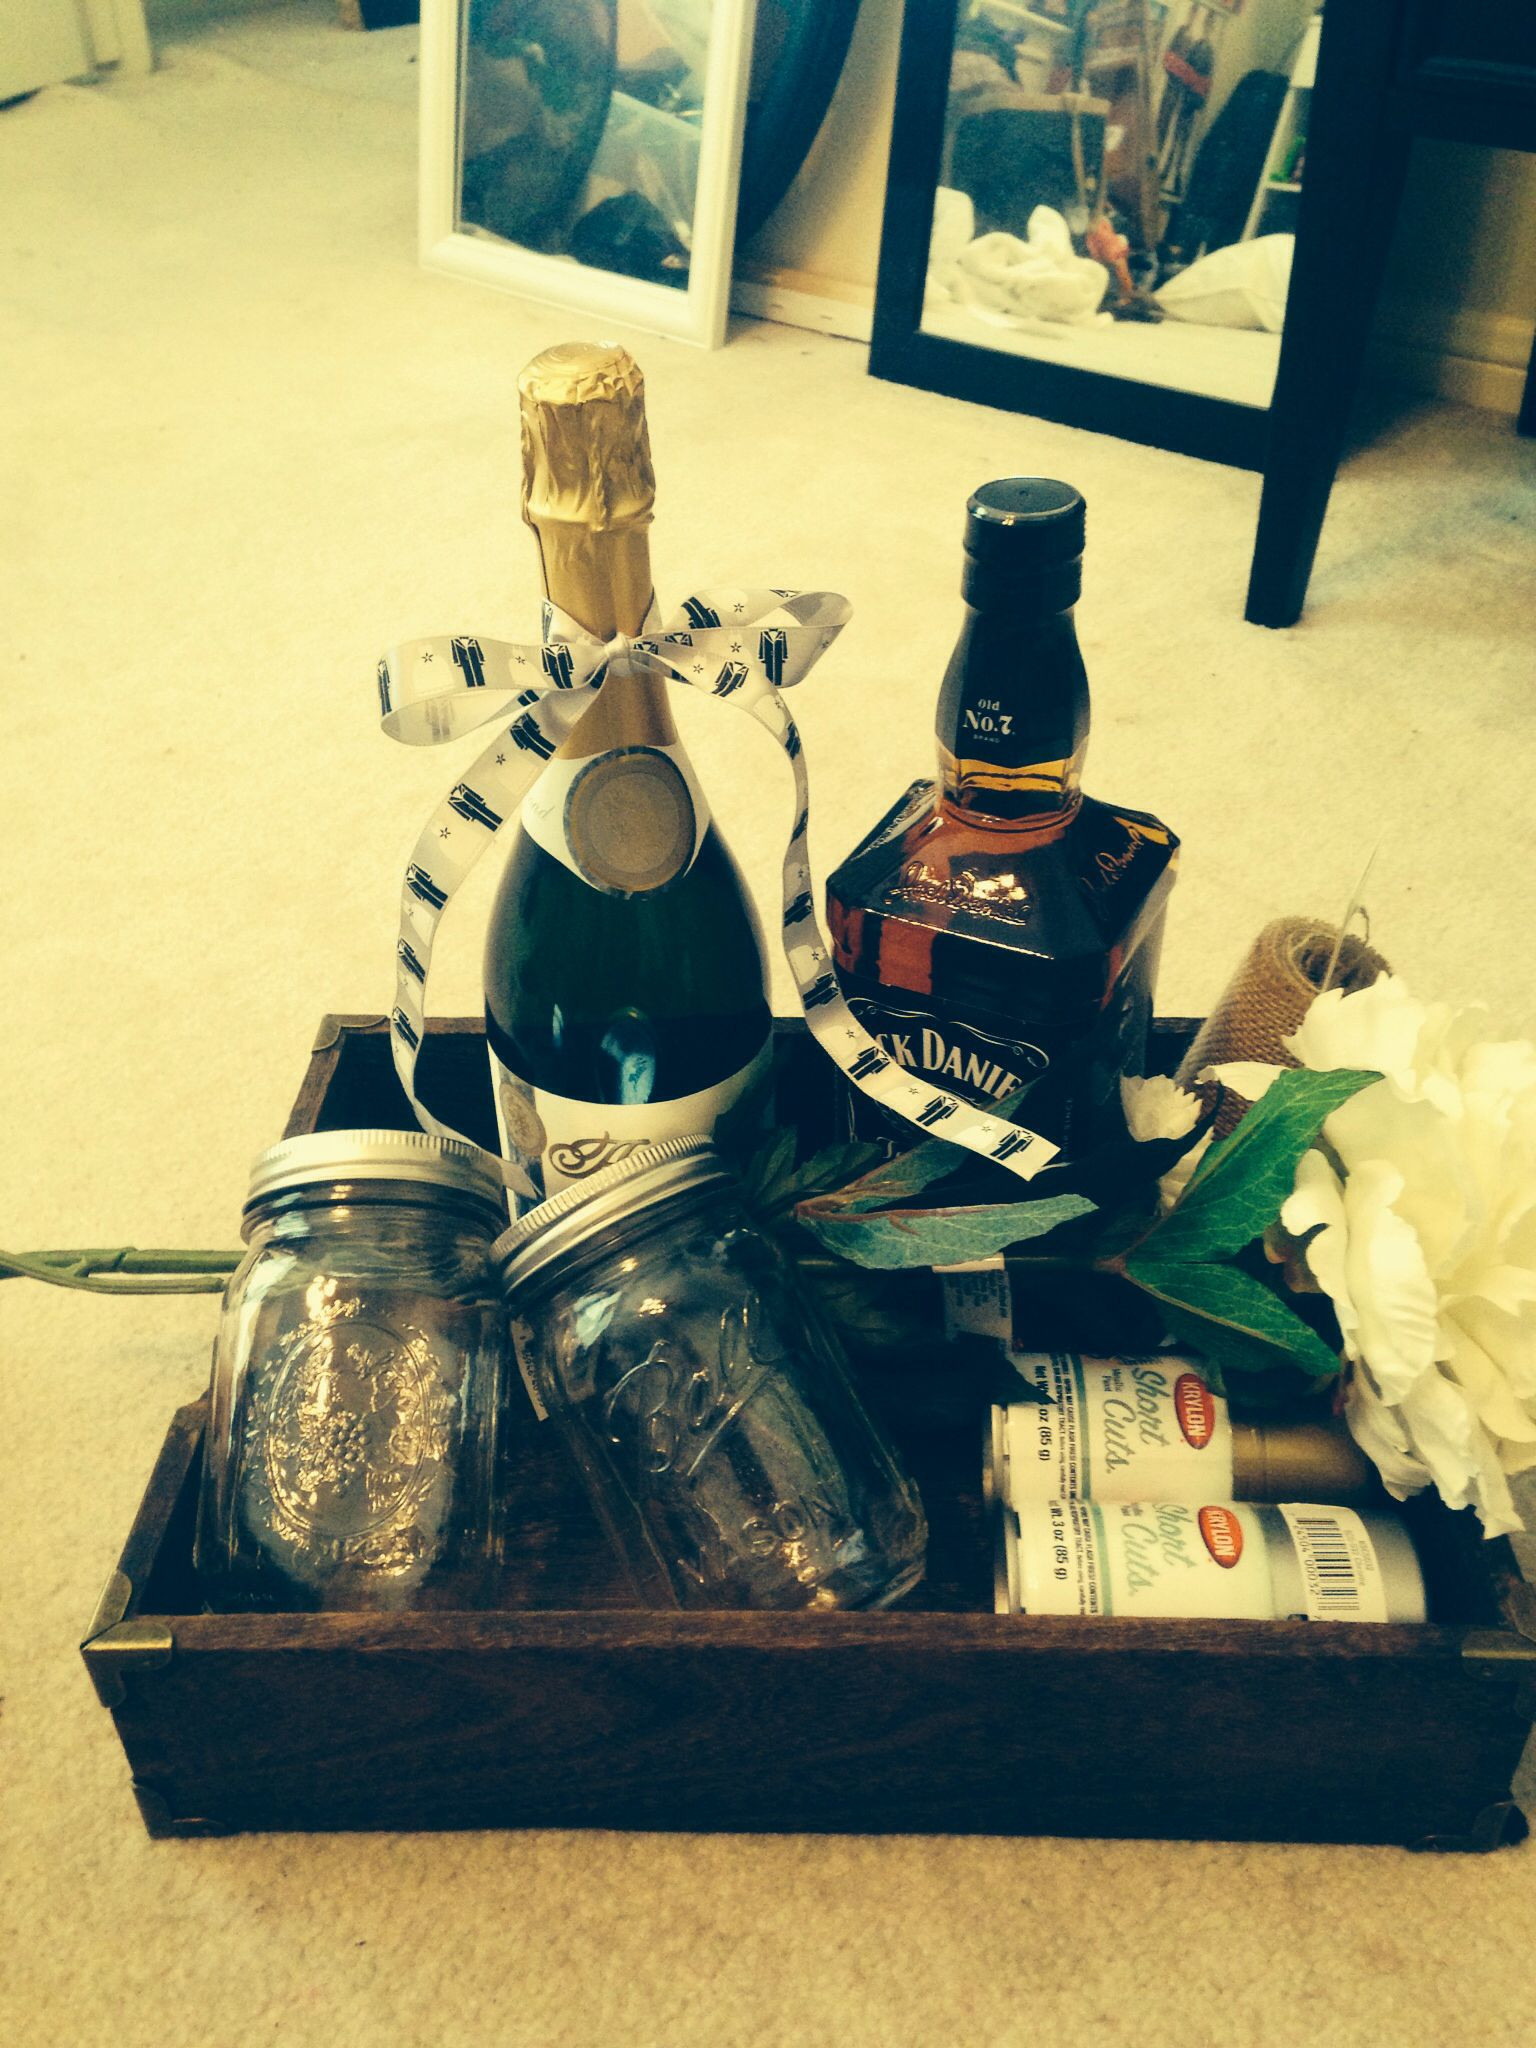 Best ideas about Stock The Bar Gift Ideas . Save or Pin Stock the bar t idea Create Pinterest Now.